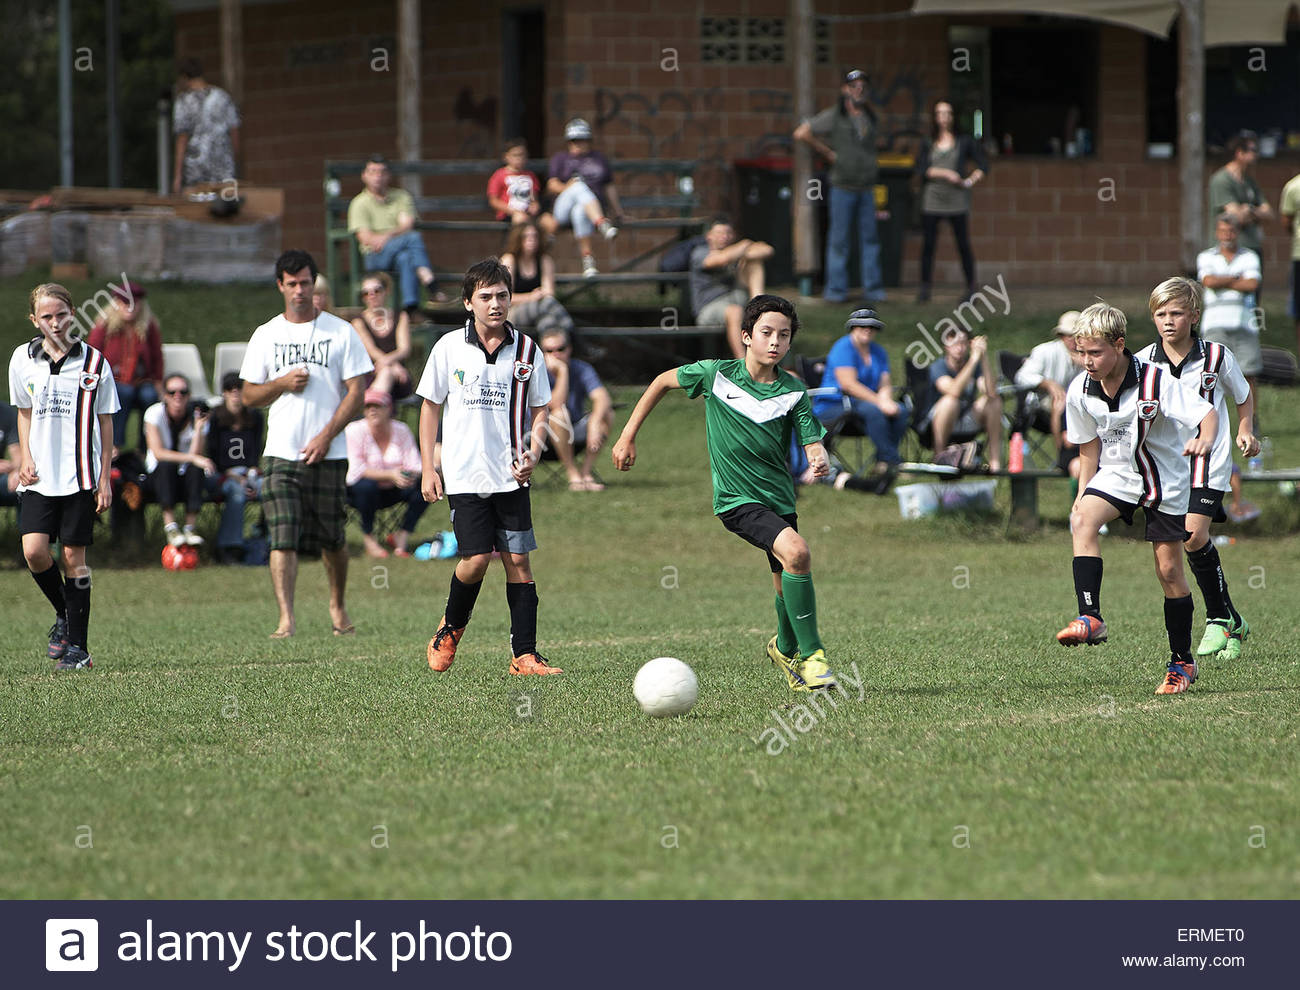 young junior soccer boy player dribbling the ball ahead of the opposition team - Stock Image